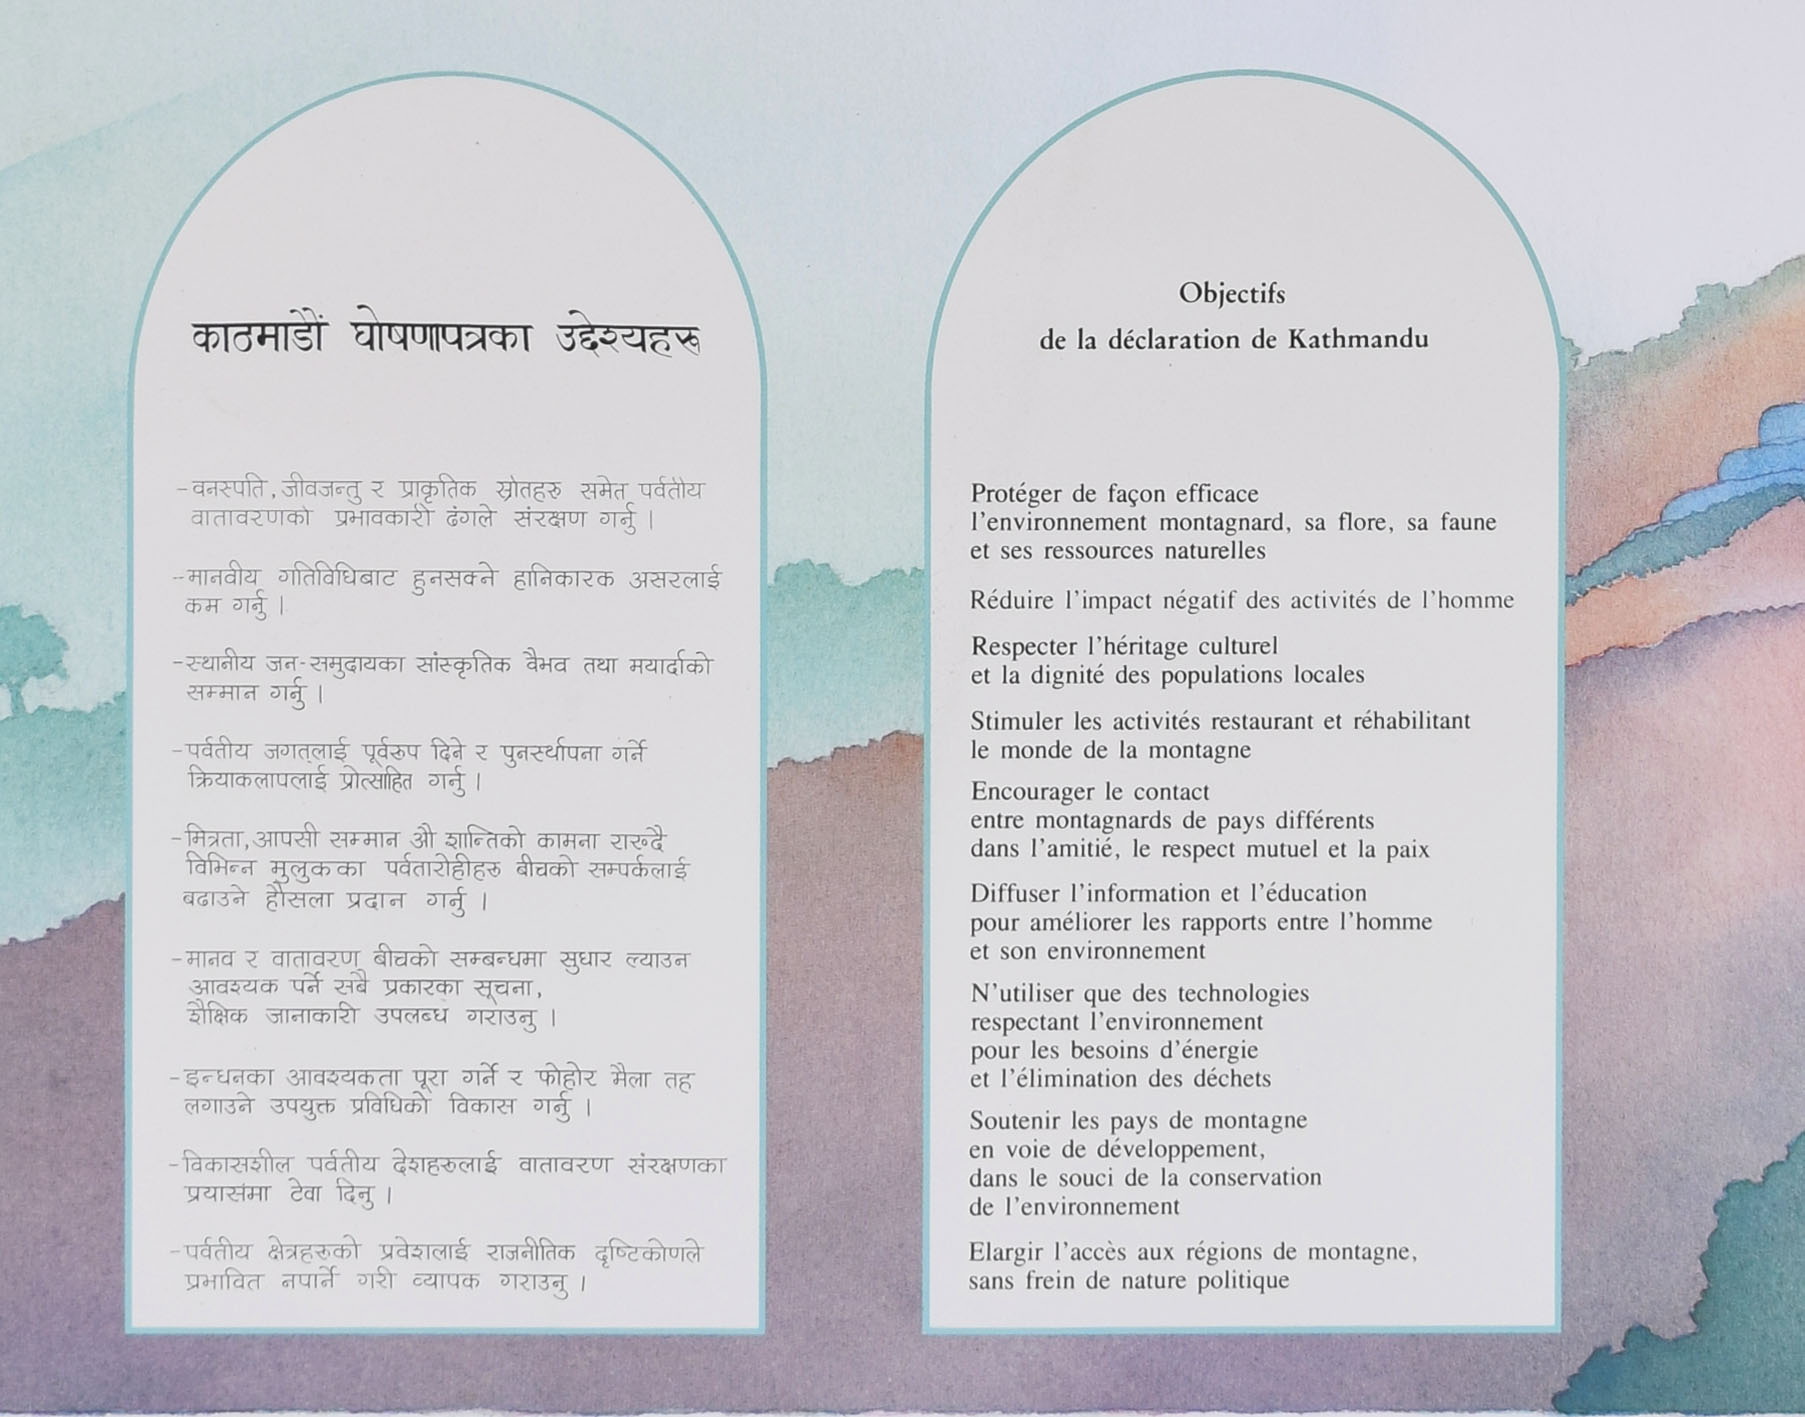 'Samivel' Paul Gayet-Tancrède, Objectives of the Kathmandu Declaration Original Poster